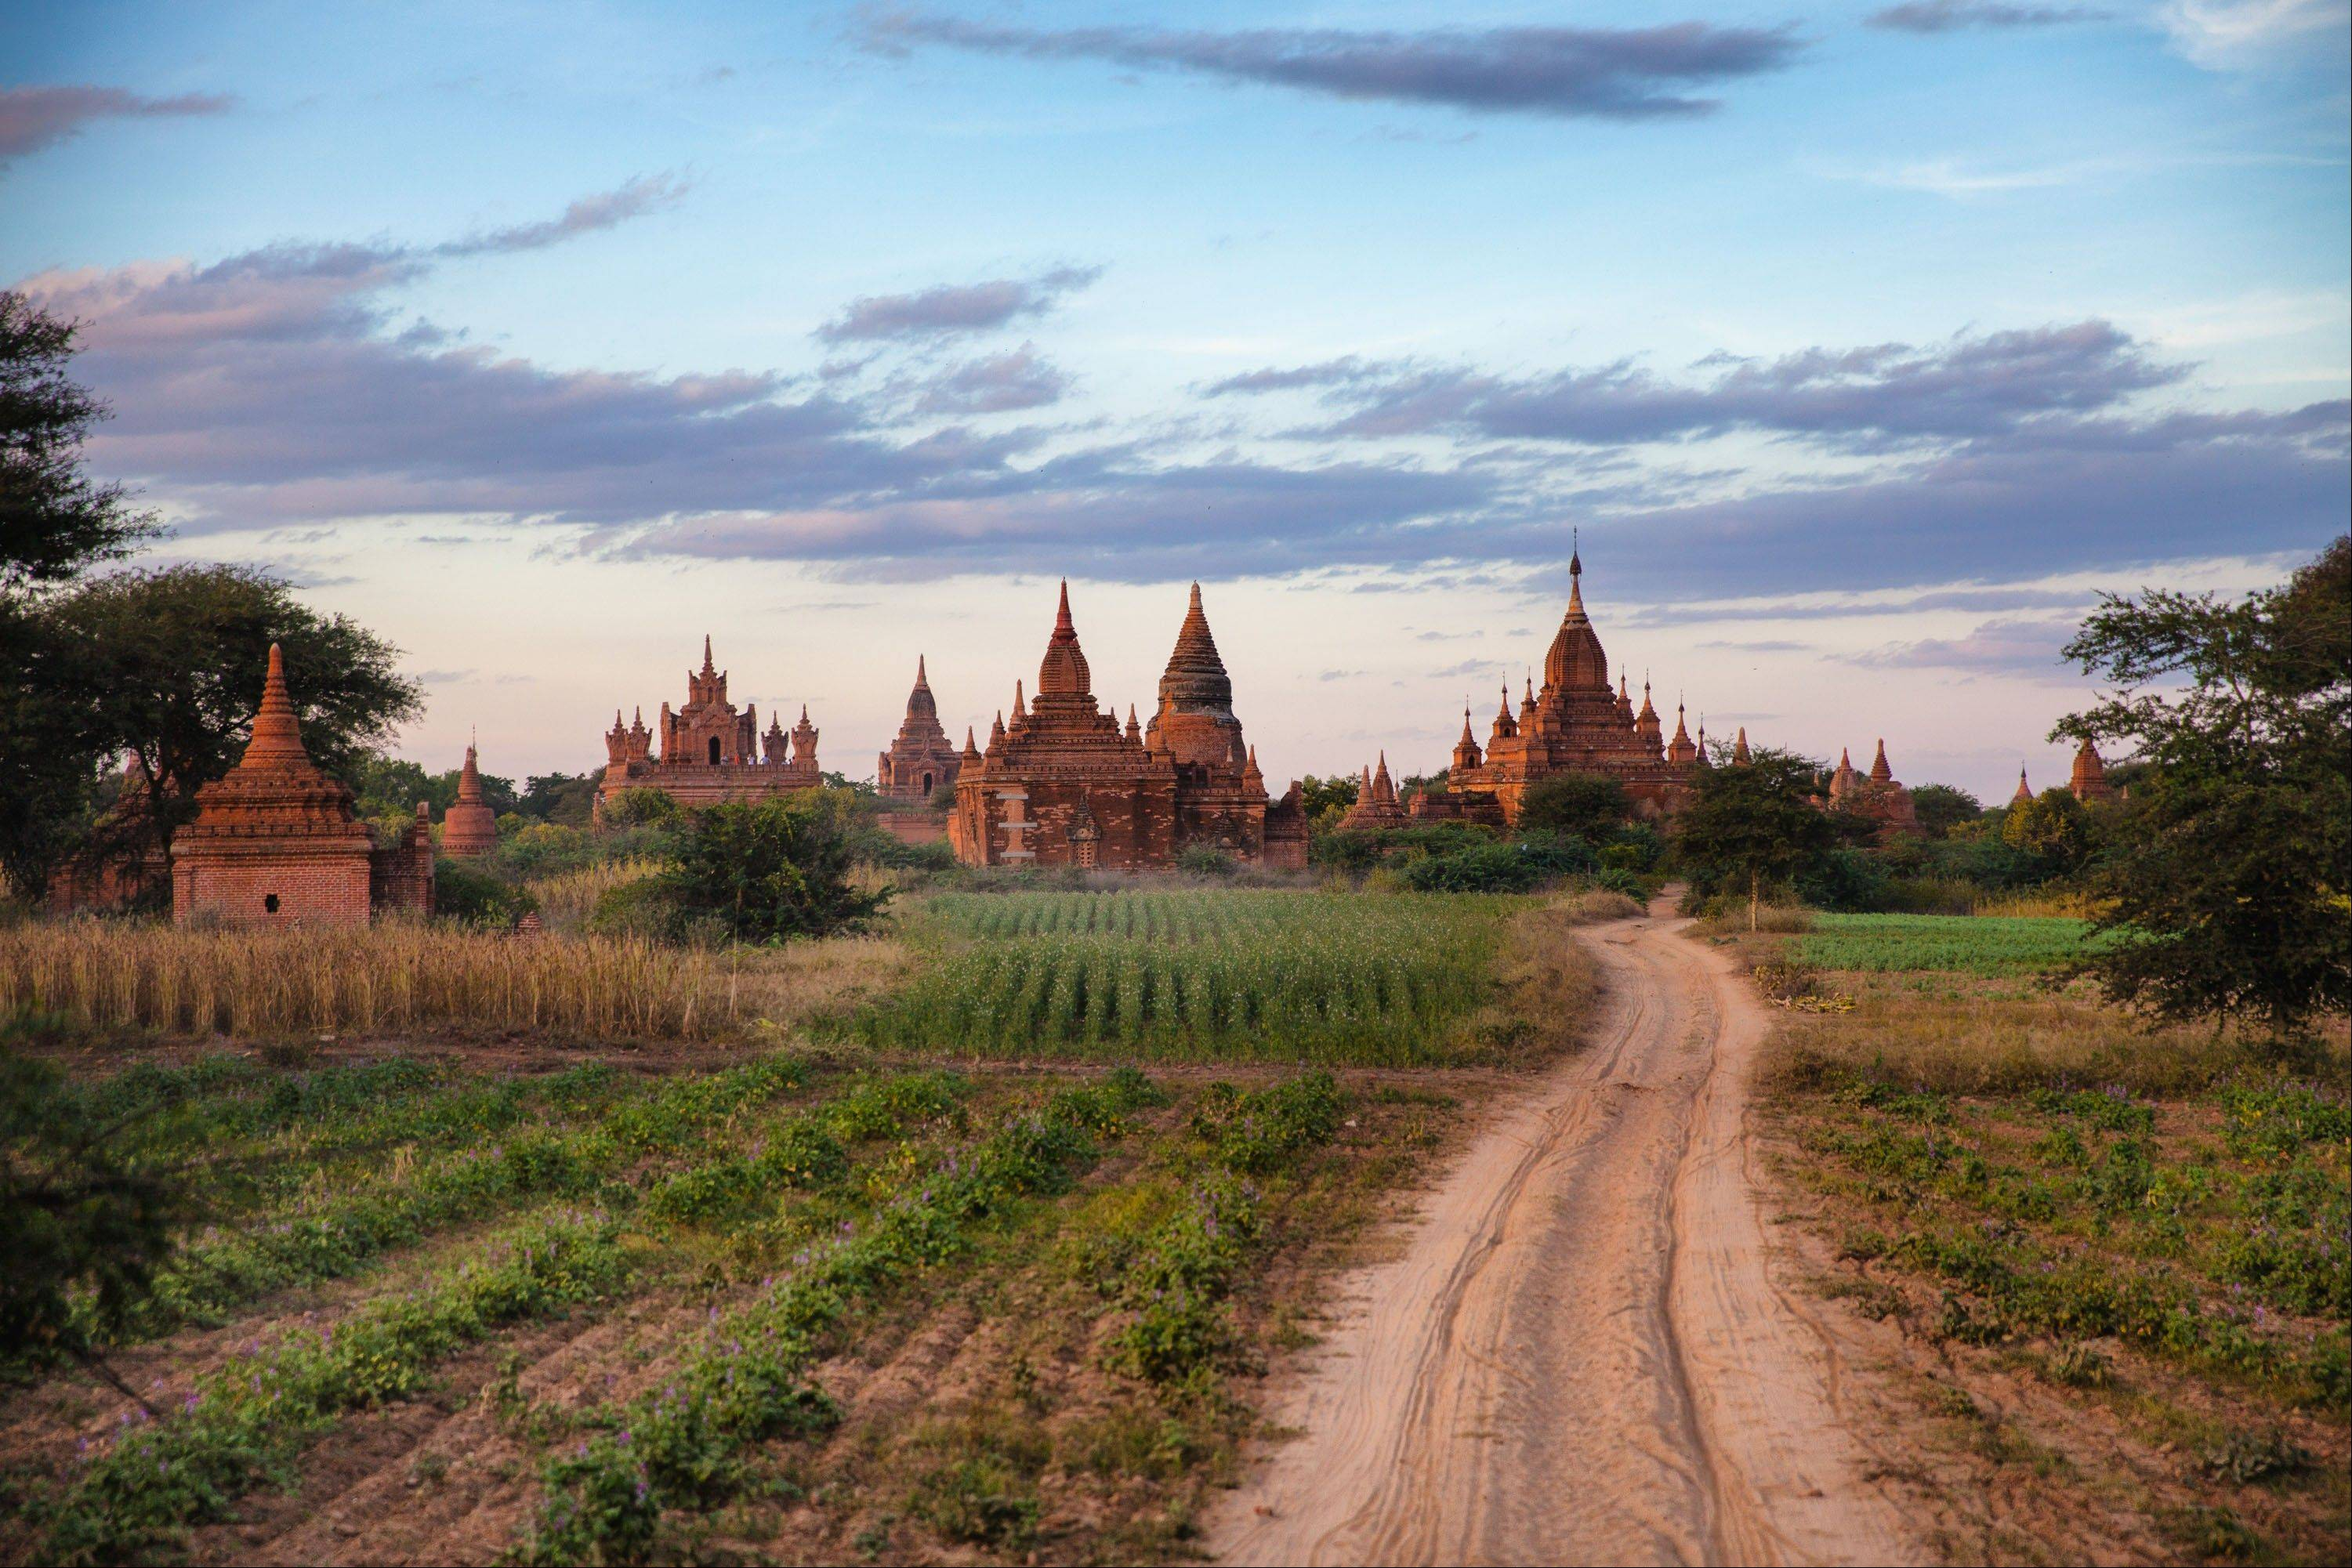 Some of the more than 2,200 Pagodas found in Bagan, Myanmar.